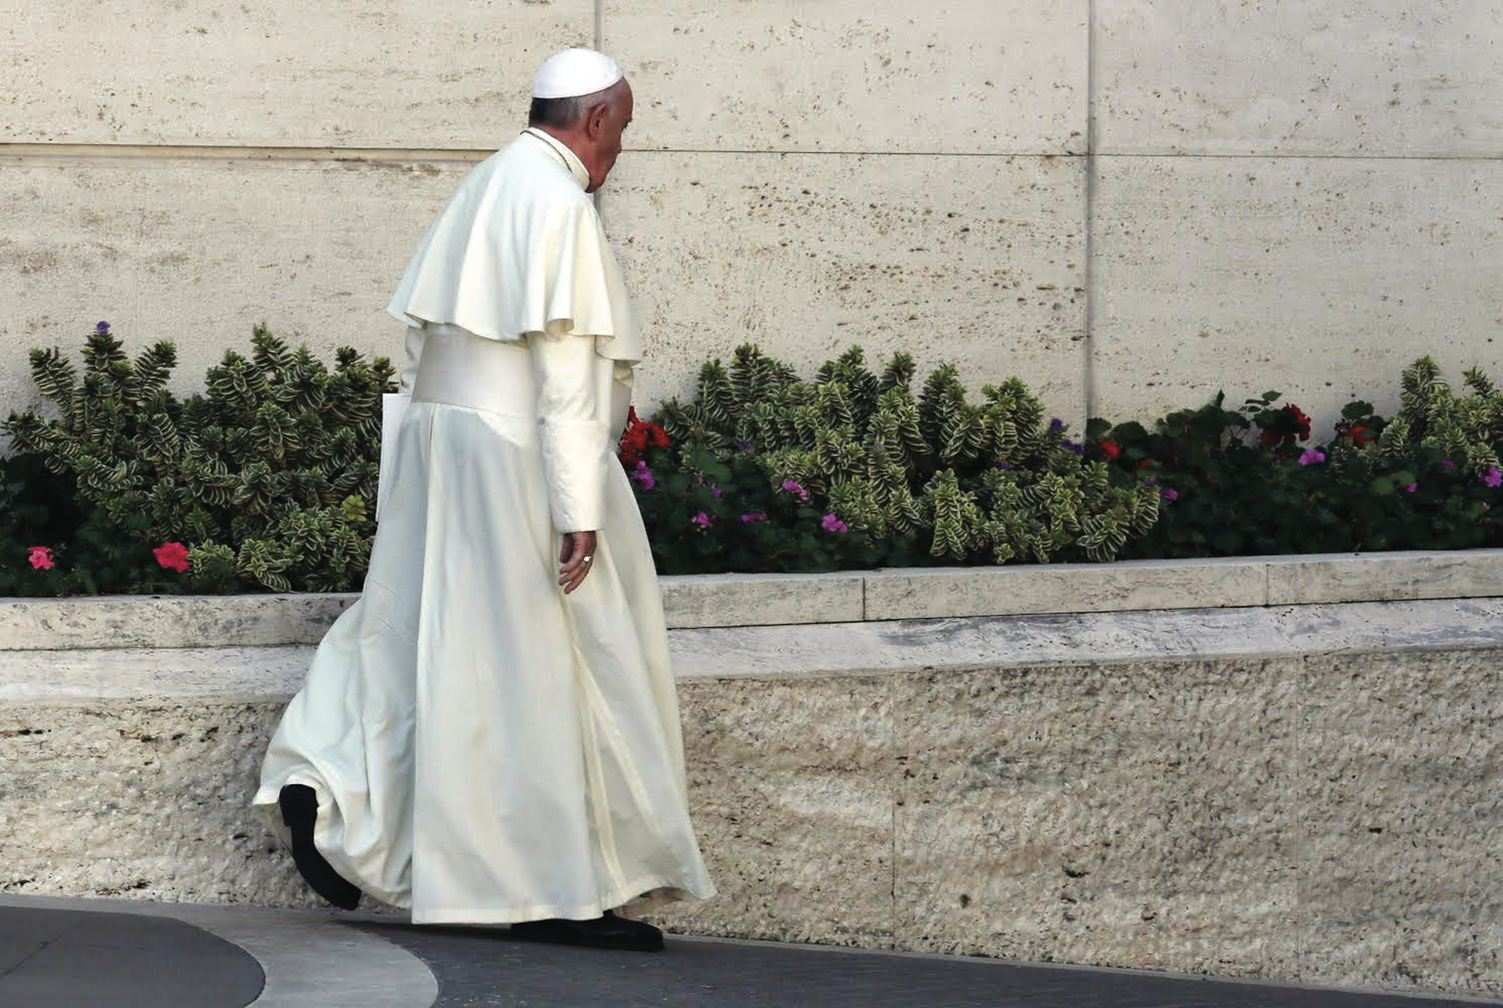 October 6, 2014, Vatican City: Pope Francis walks alone from the Synod Hall at the end of the first morning of the Synod on the Family. (Galazka photo)